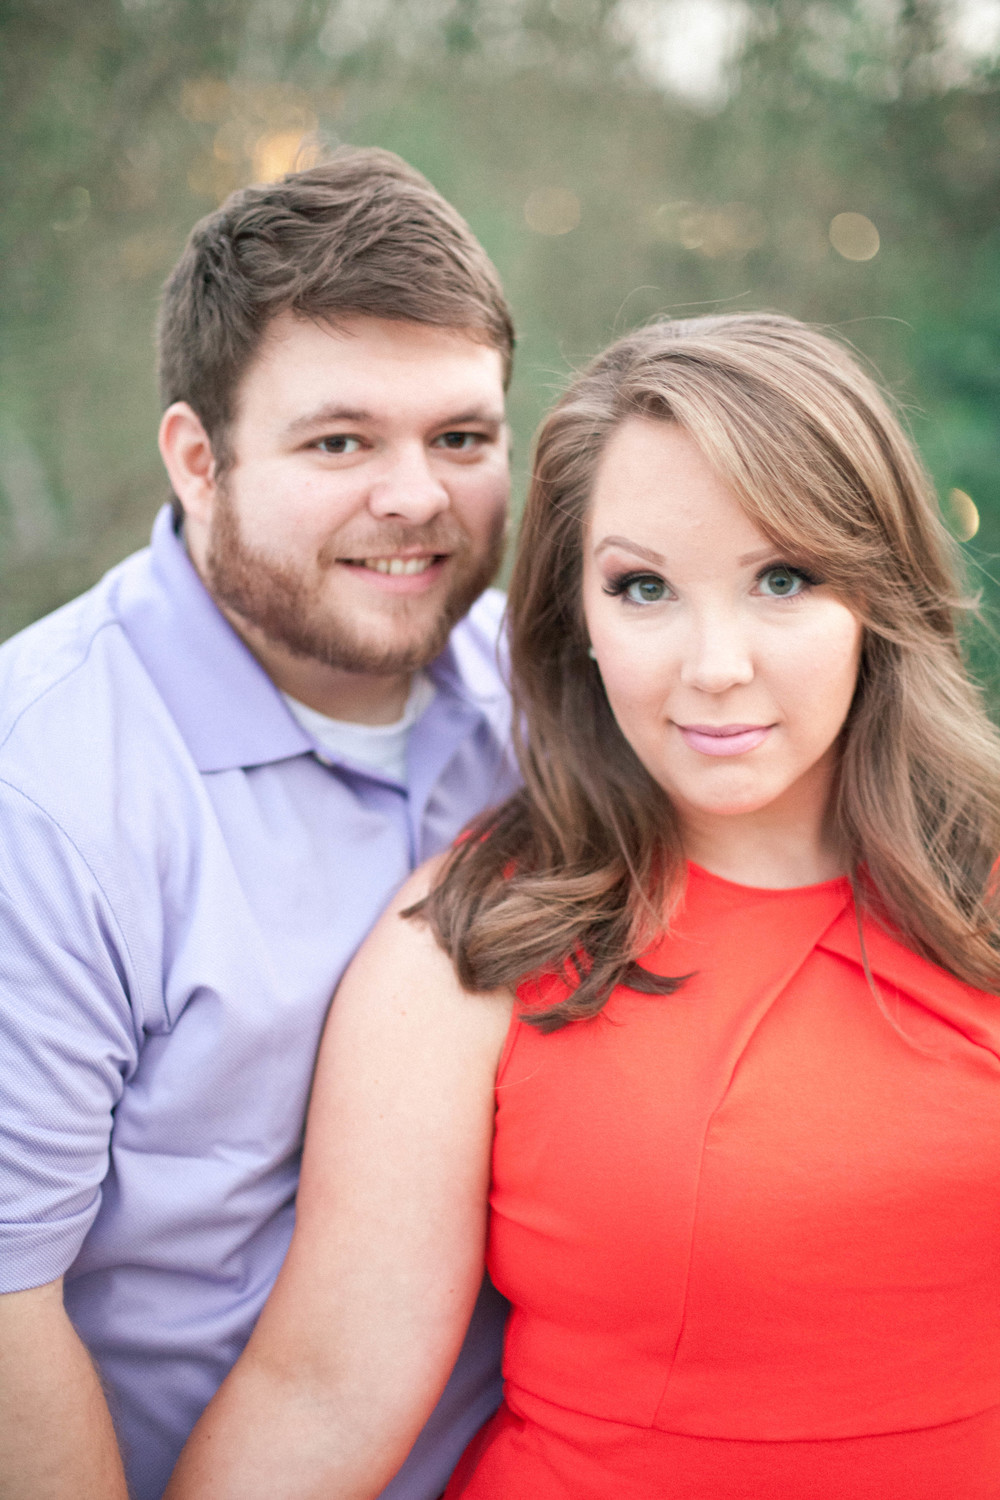 zach_gabbie_engagement_poured_out_photography-69.jpg